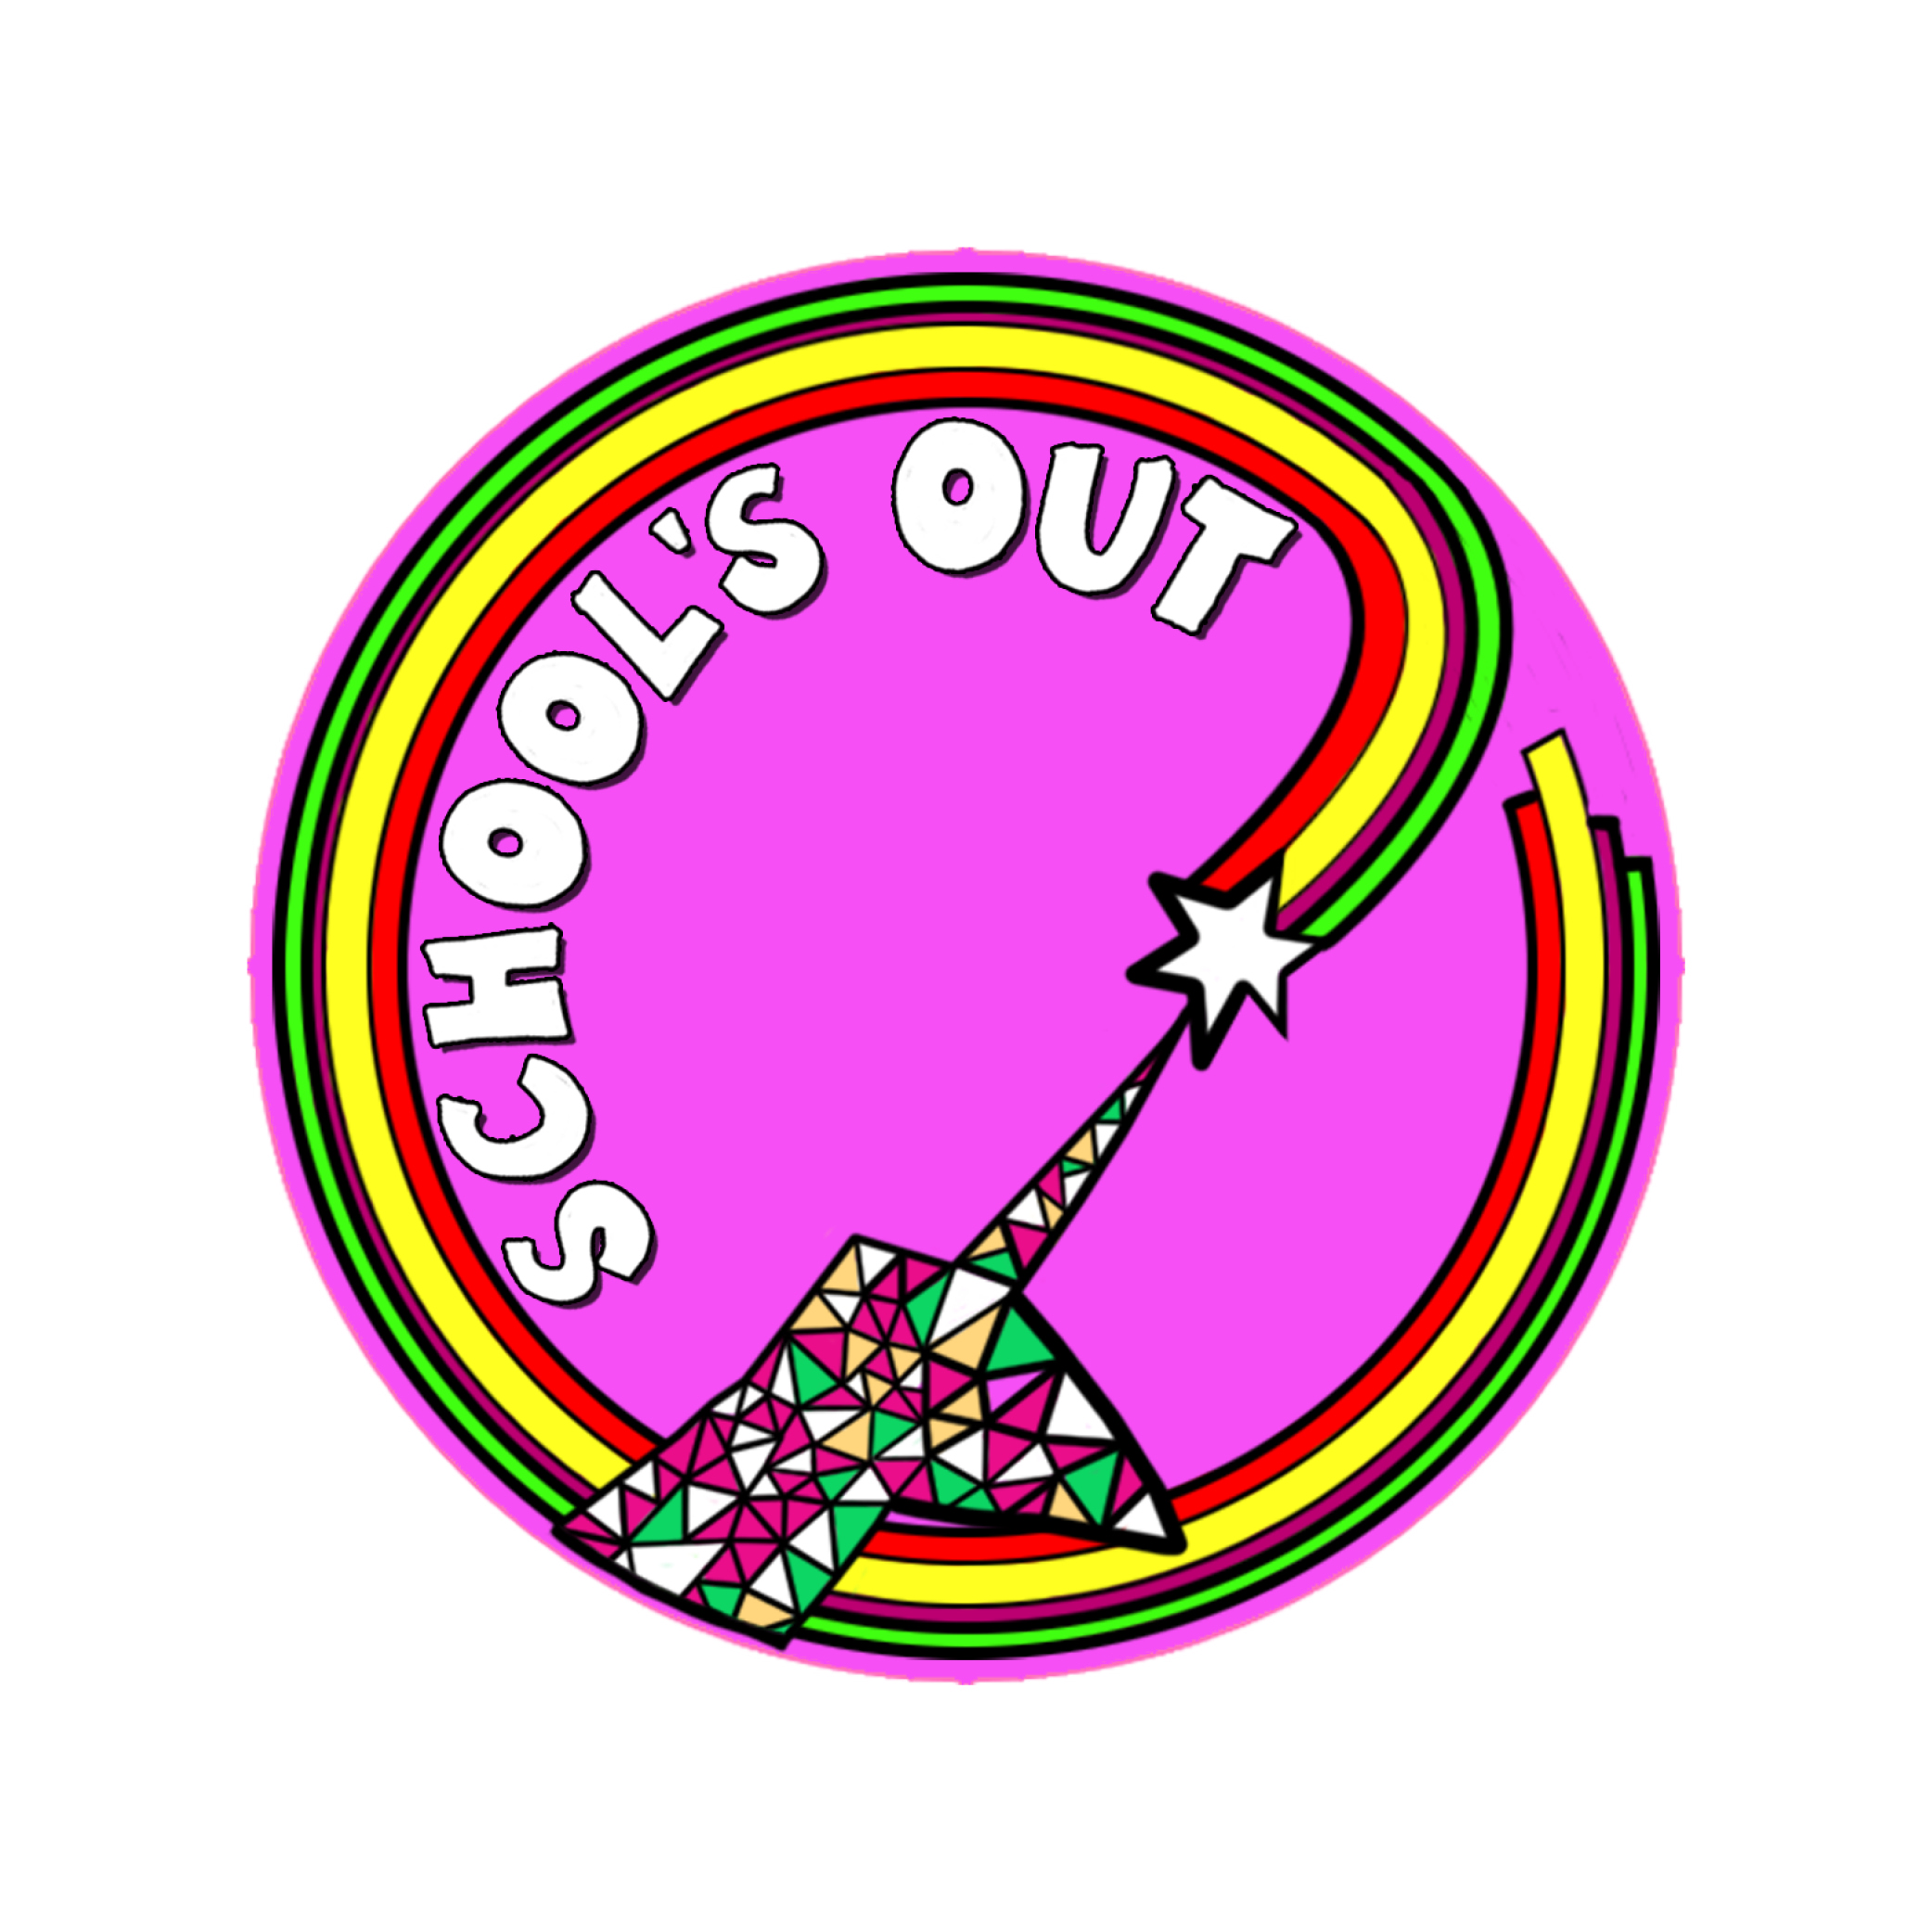 School's Out Logo (PNG) -